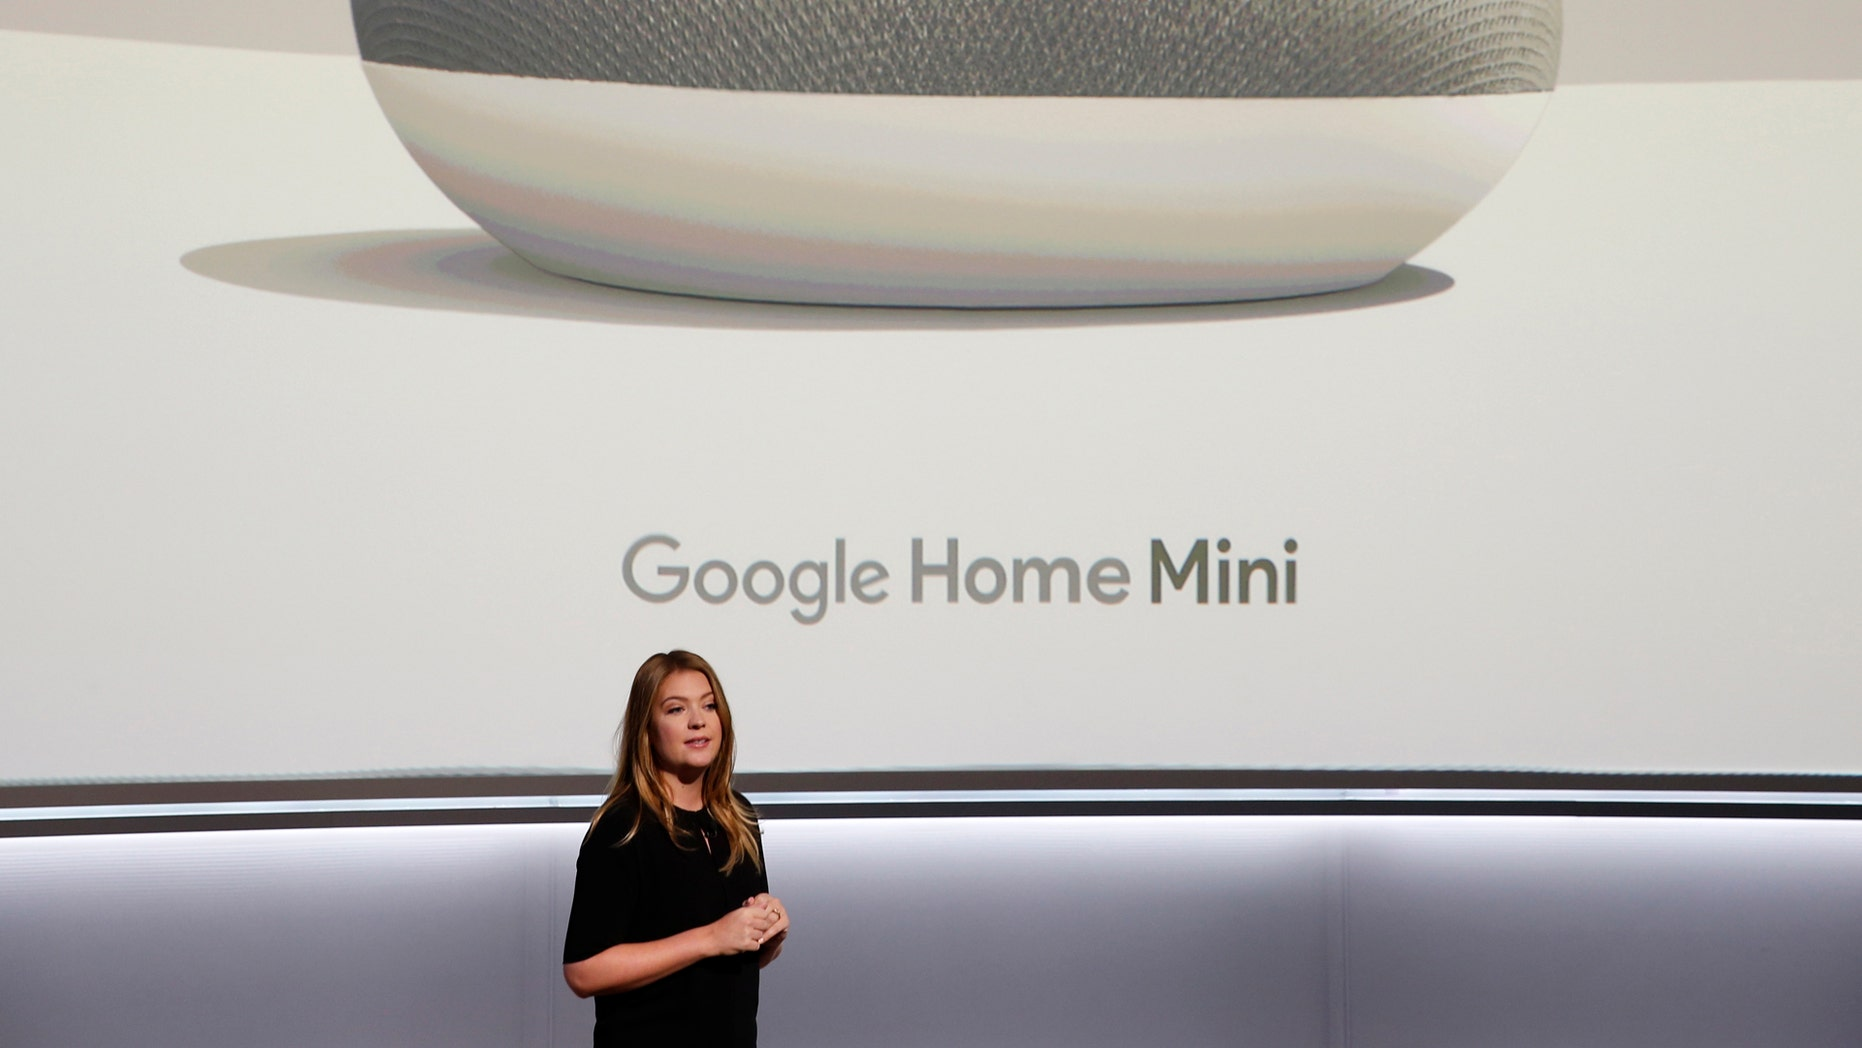 Isabelle Olsson, Google's Head of Industrial Design for Home, speaks about the Google Home Mini during a launch event in San Francisco, California, U.S. October 4, 2017. REUTERS/Stephen Lam - HP1EDA419Z335